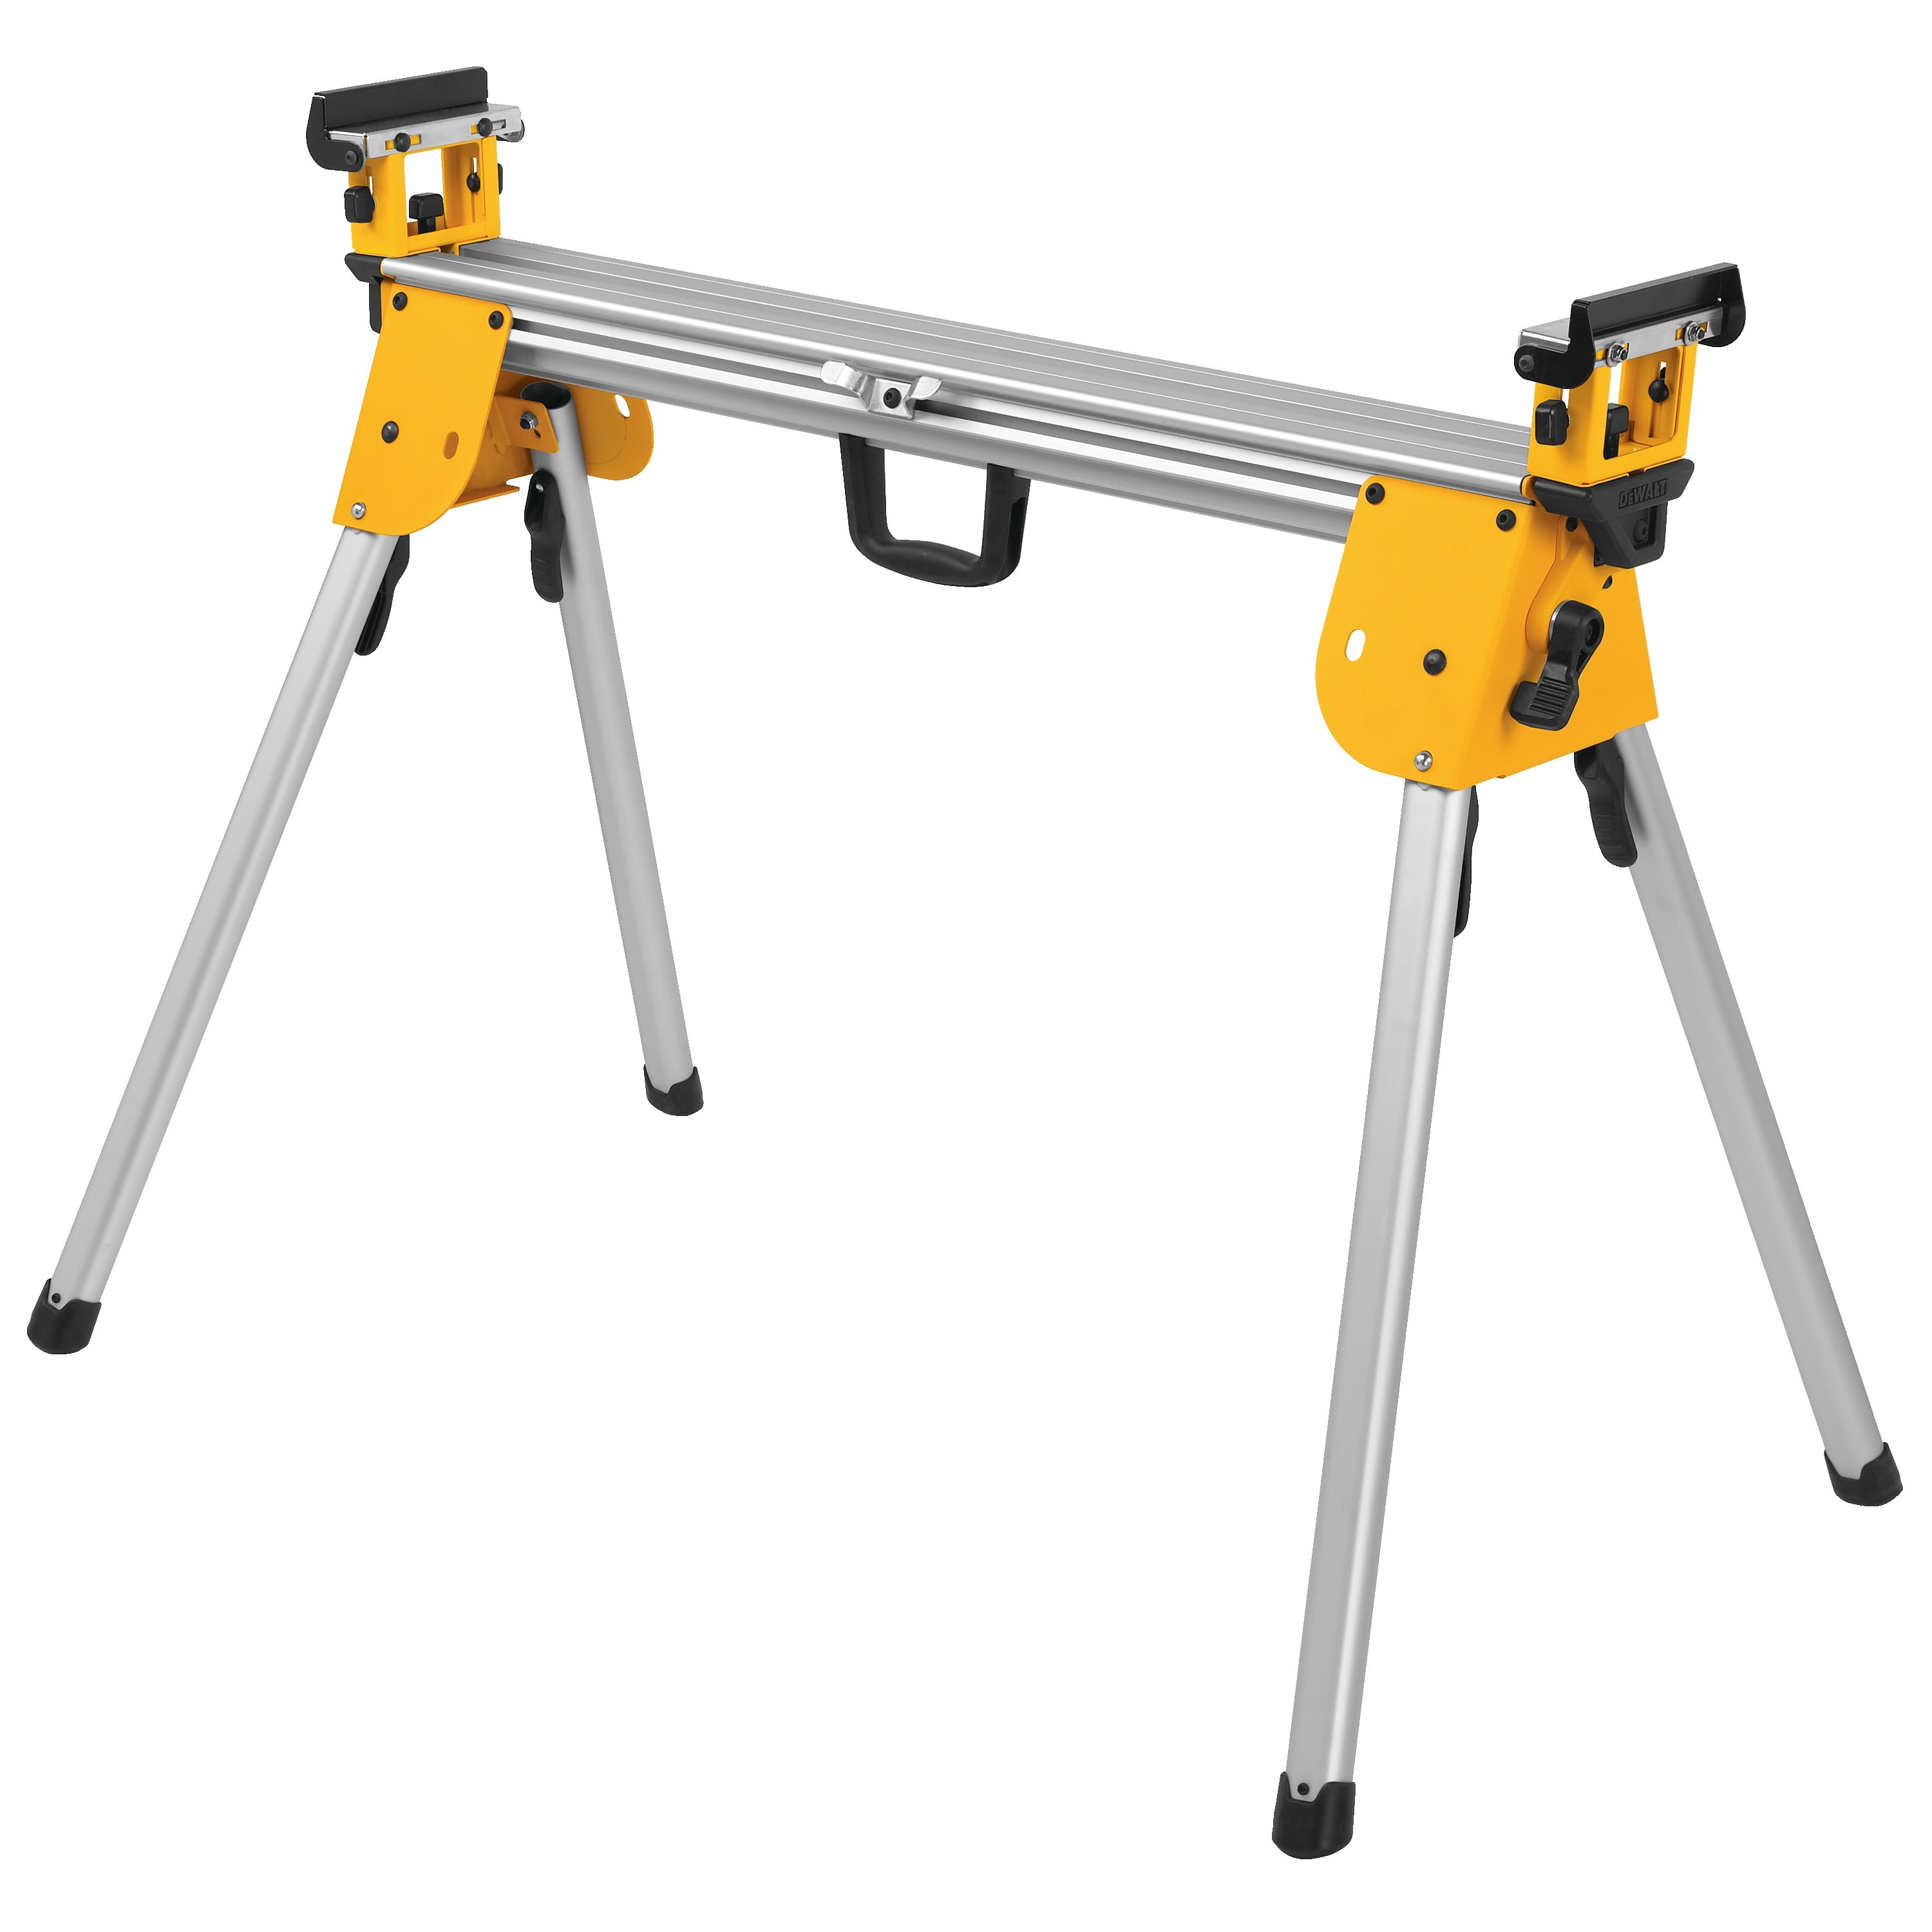 Picture of DeWALT DWX724 Miter Saw Stand, Aluminum, Black/Silver/Yellow